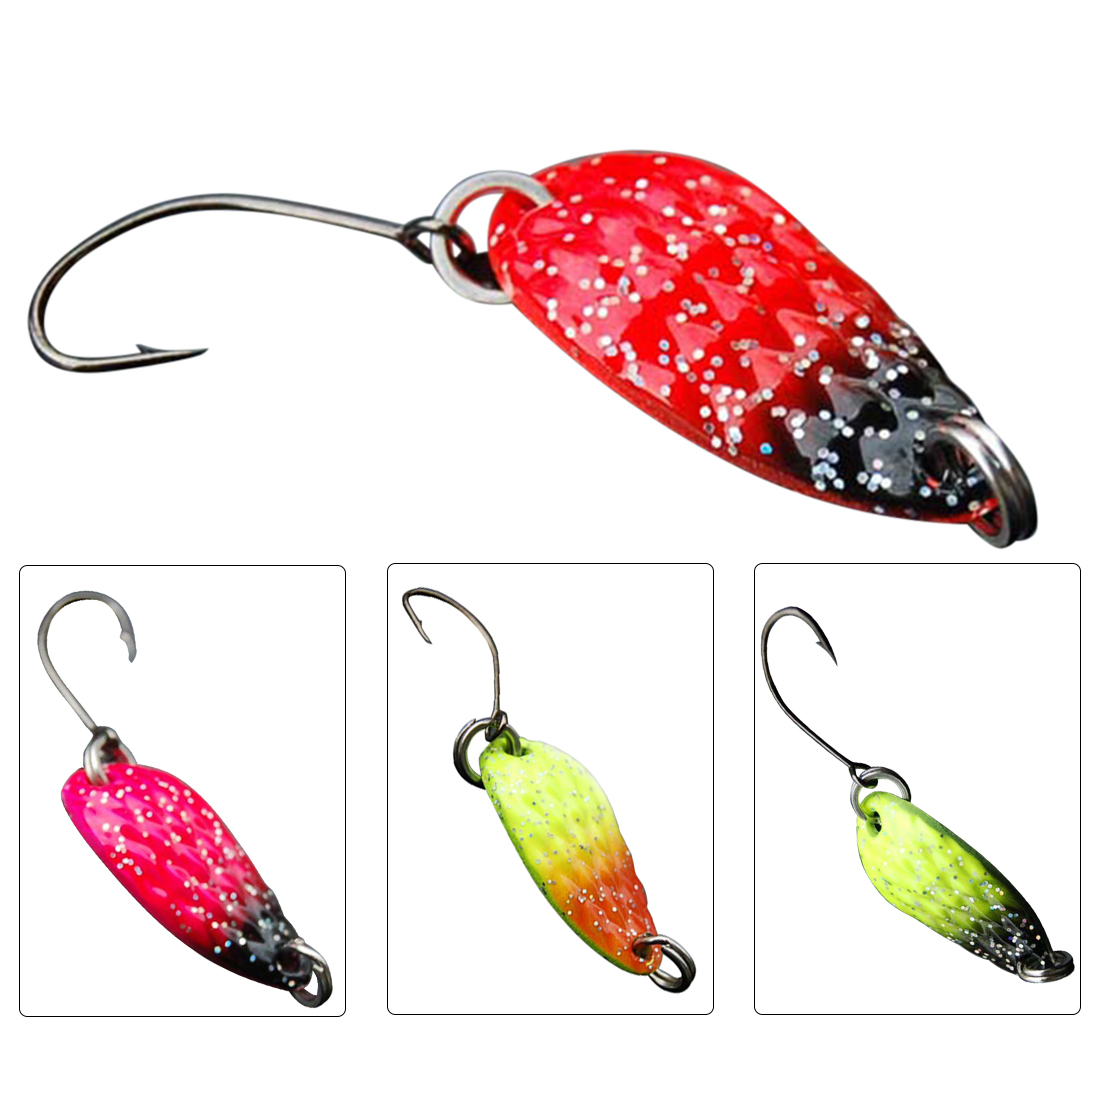 Hot 1PCS 3cm 3g Sequins Spinner Spoon Fishing Lure Bait Fishing Tackle Metal Spoon Bait For Trout Bass Spoons Small Hard Baits